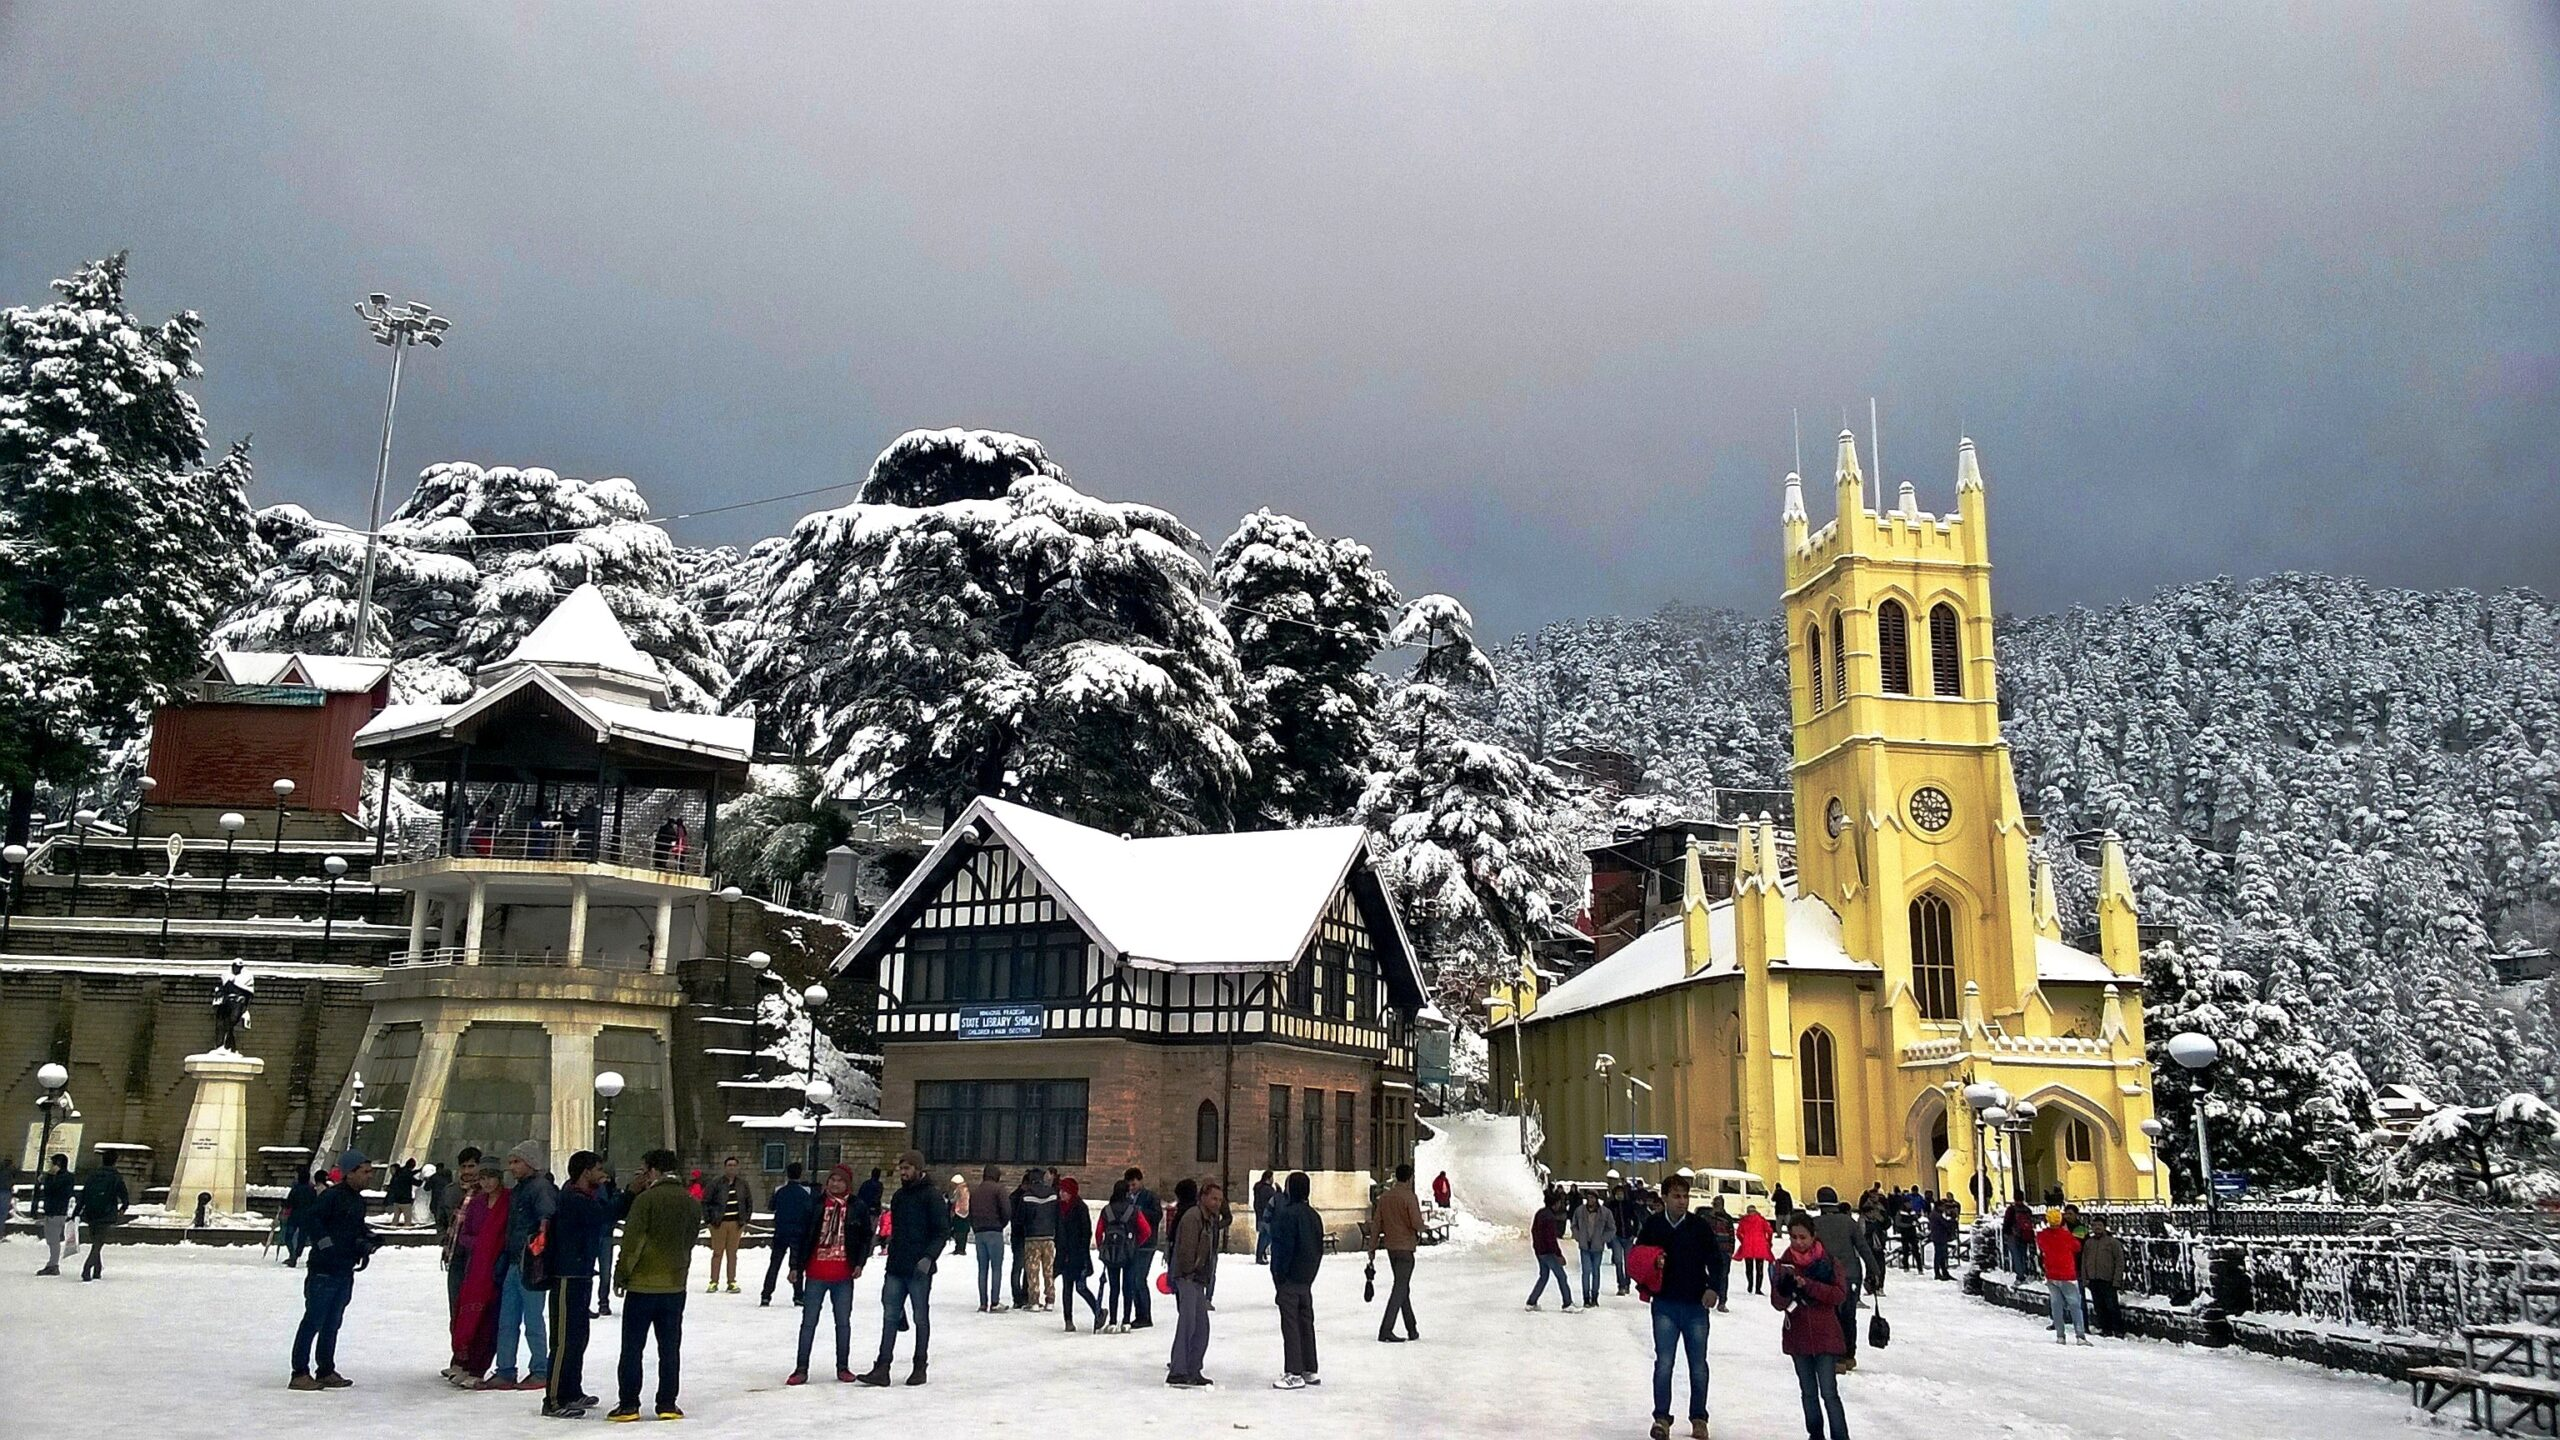 9 In Shimla, romance for couples